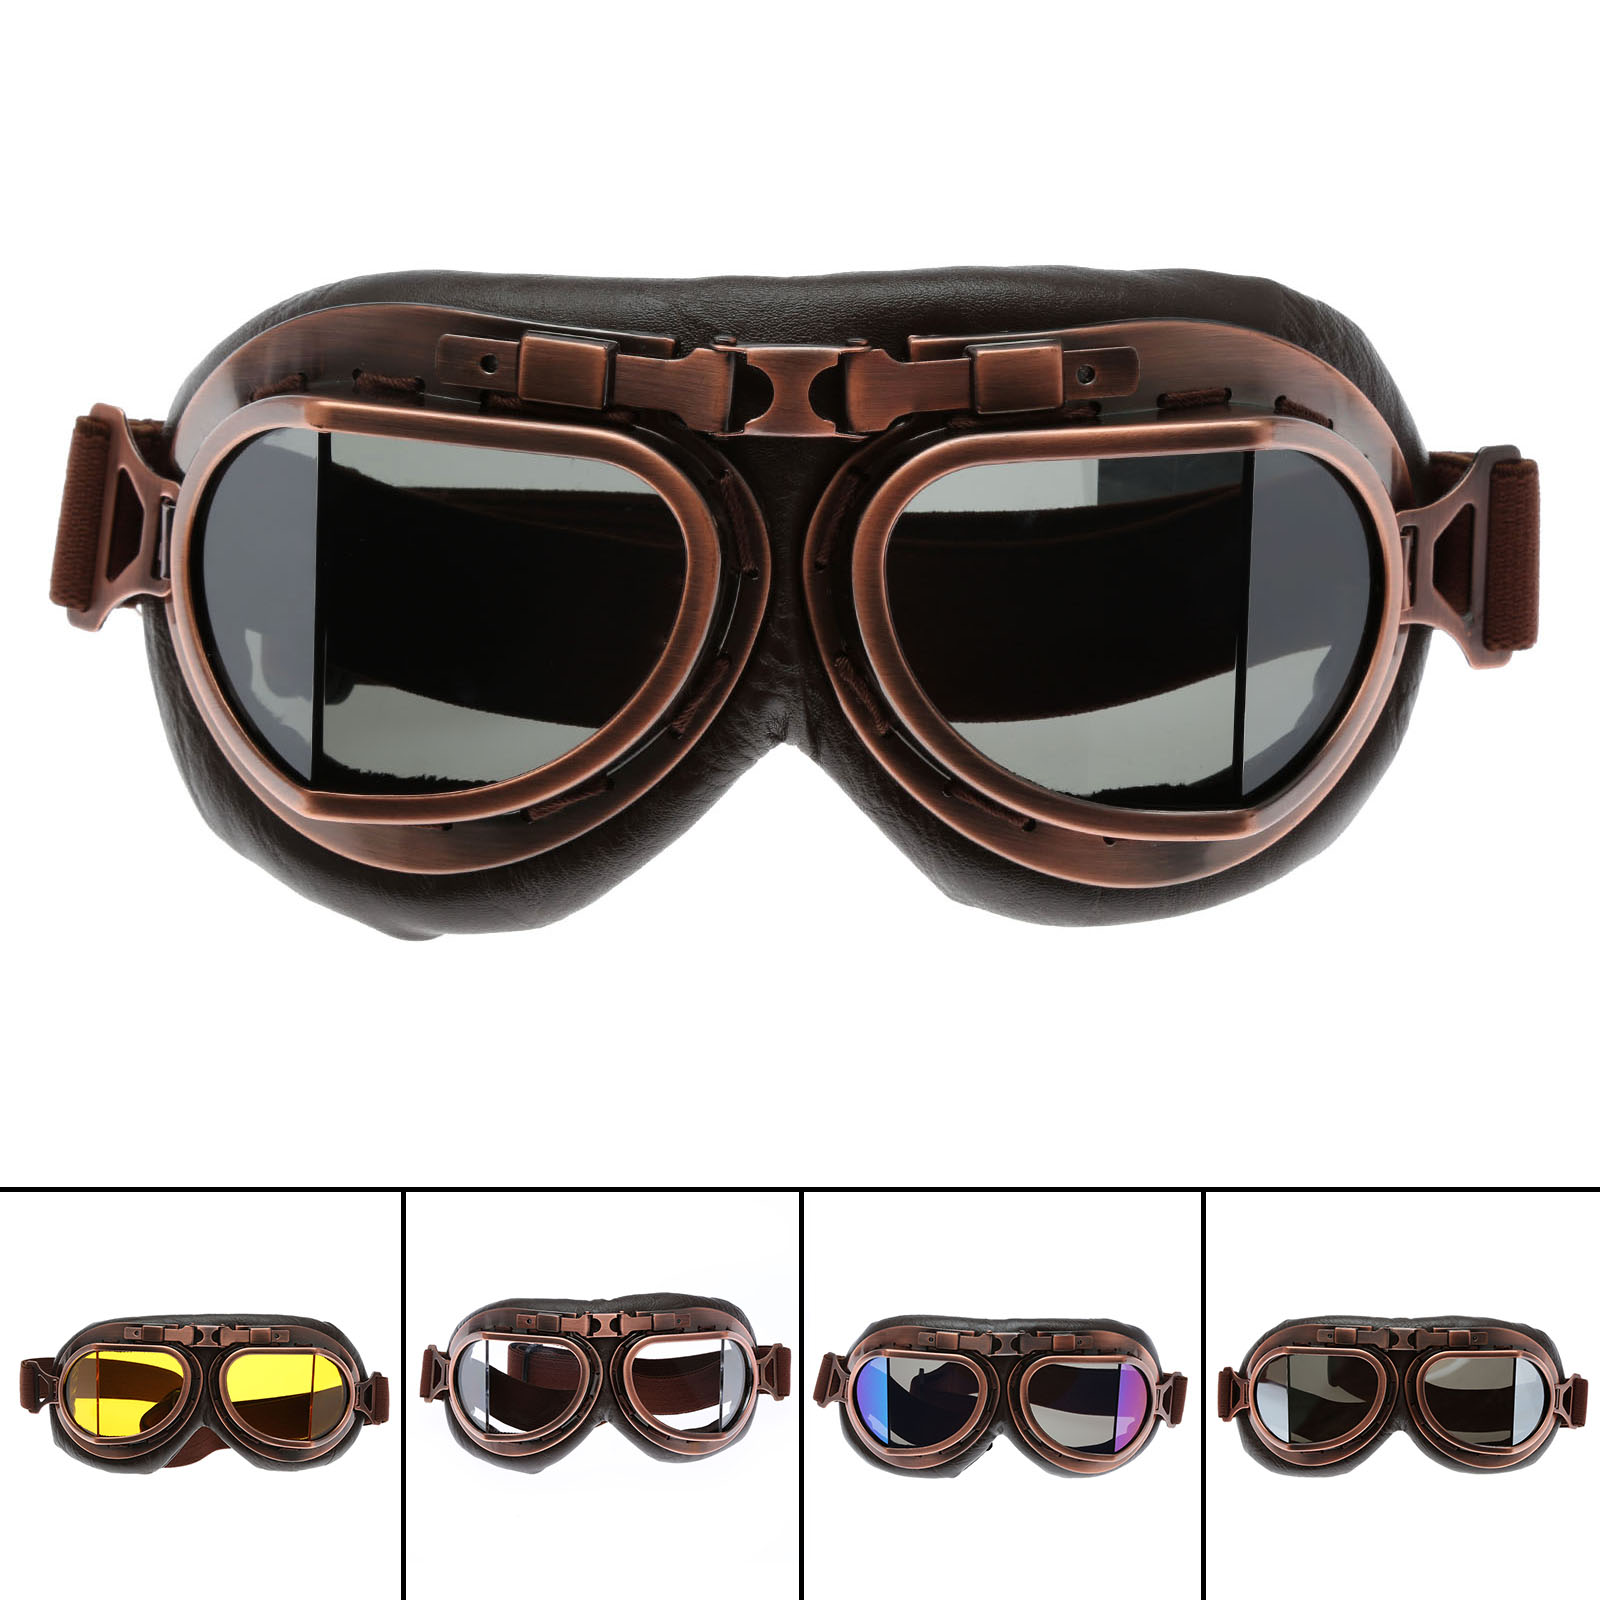 Retro Helmet Motocross Goggles High Quality Fashion New Protection Eyewear Glasses For Harley Motorcycle Cafe Racer Dirt Bike